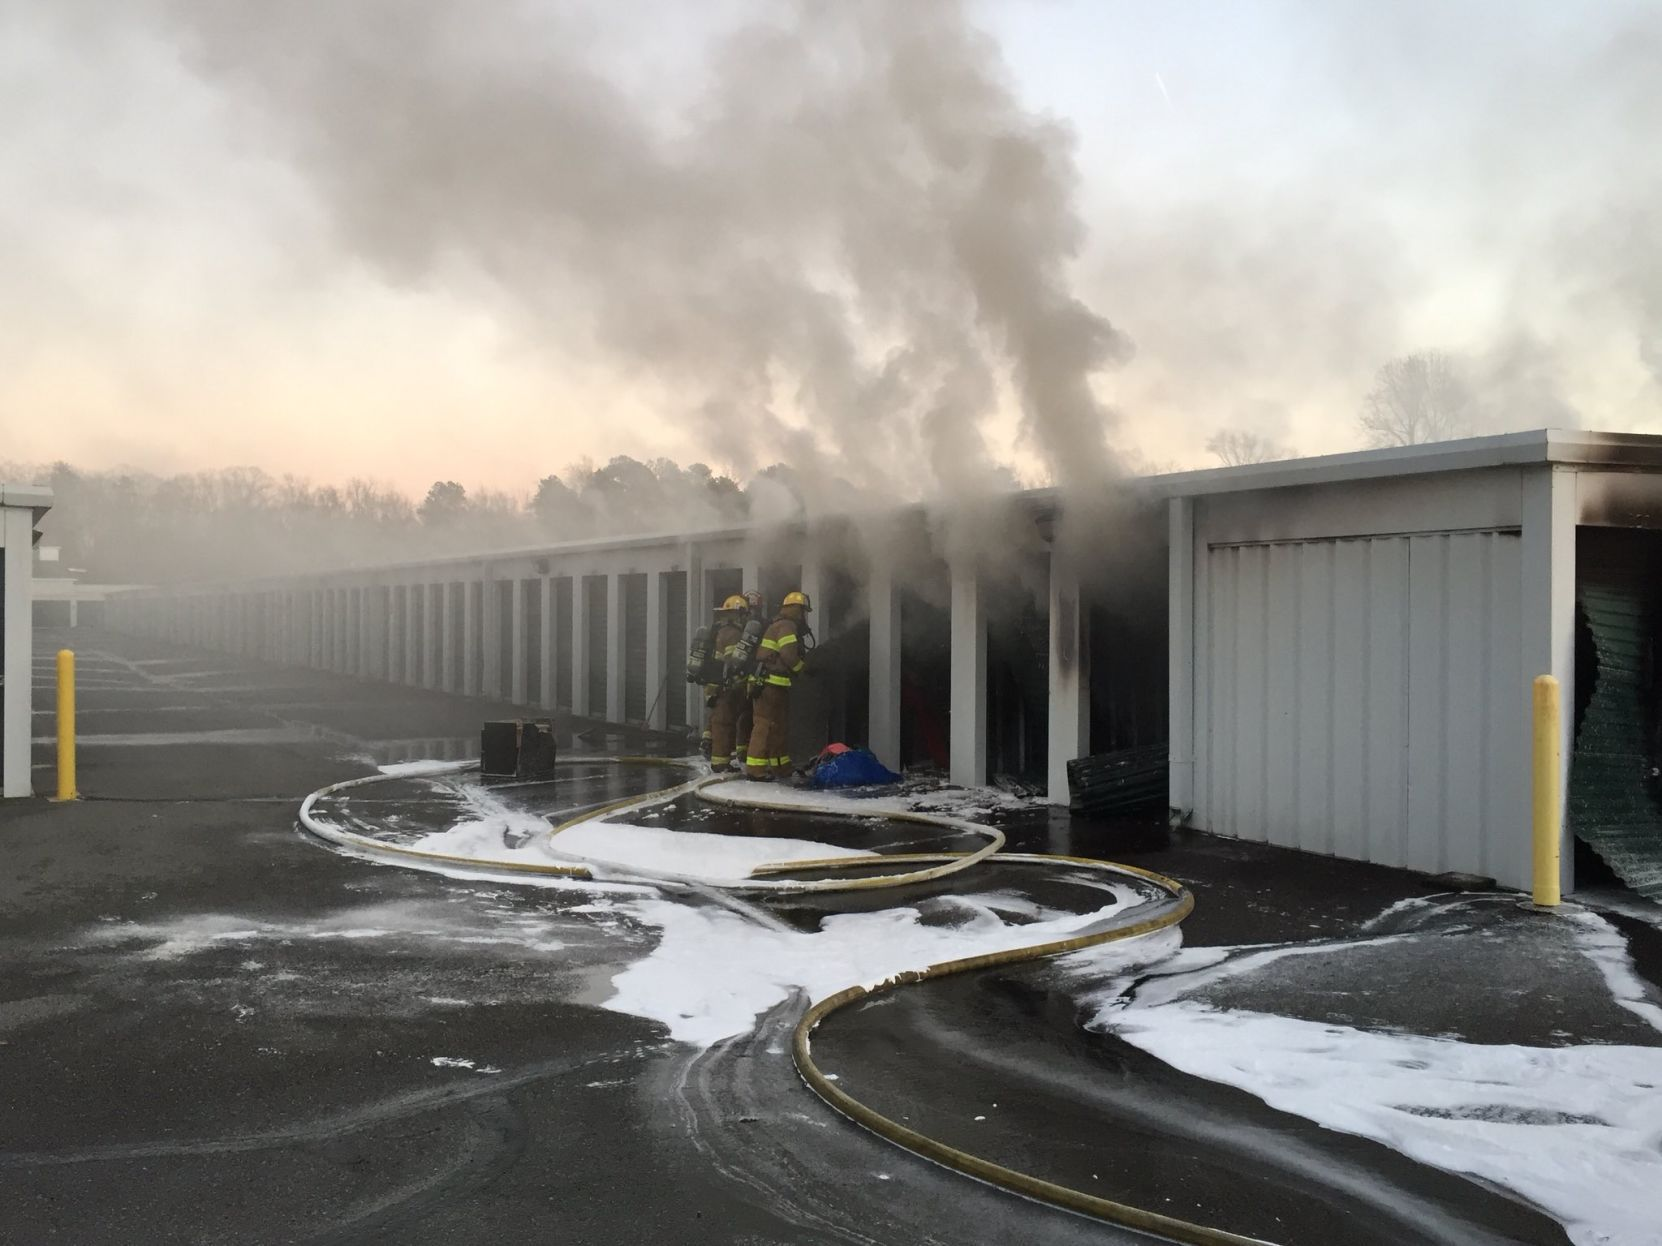 Storage unit fire off state Route 10 & Chesterfield firefighters working 2 alarm blaze at storage facility ...